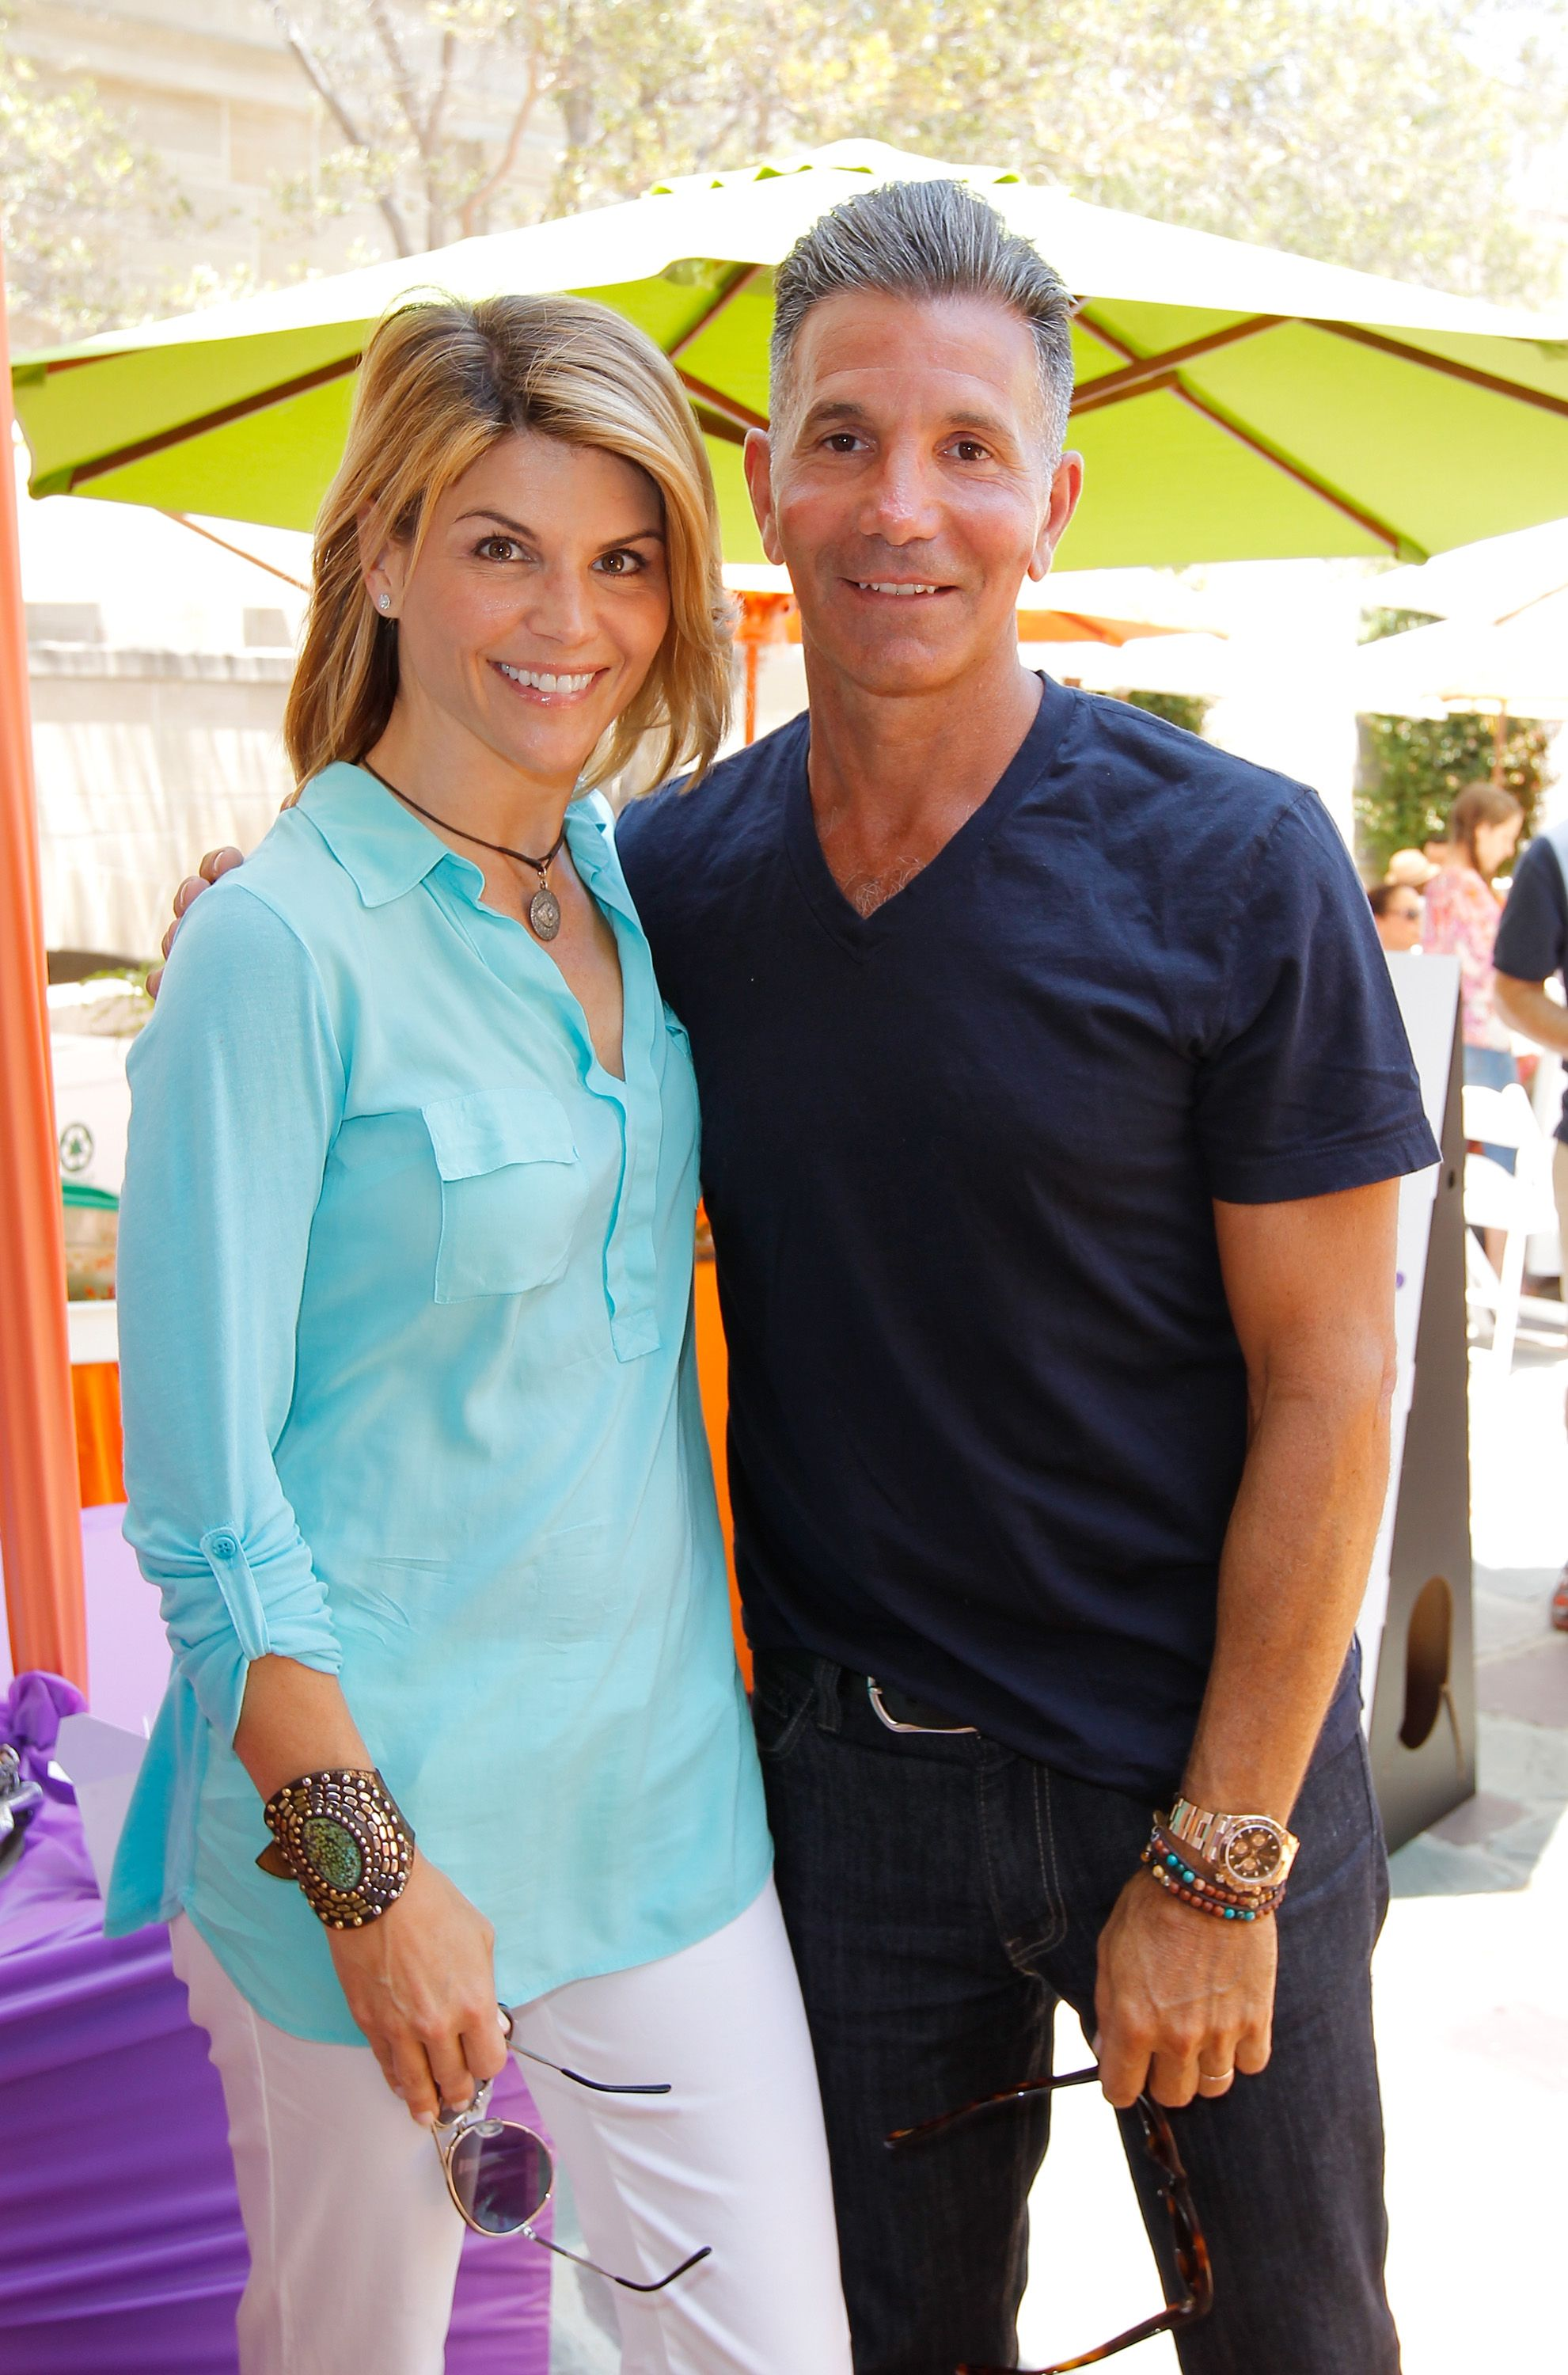 Lori Loughlin and Mossimo Giannulli at 6th Annual Kidstock Music And Arts Festival at Greystone Mansion on June 3, 2012 | Photo: Images